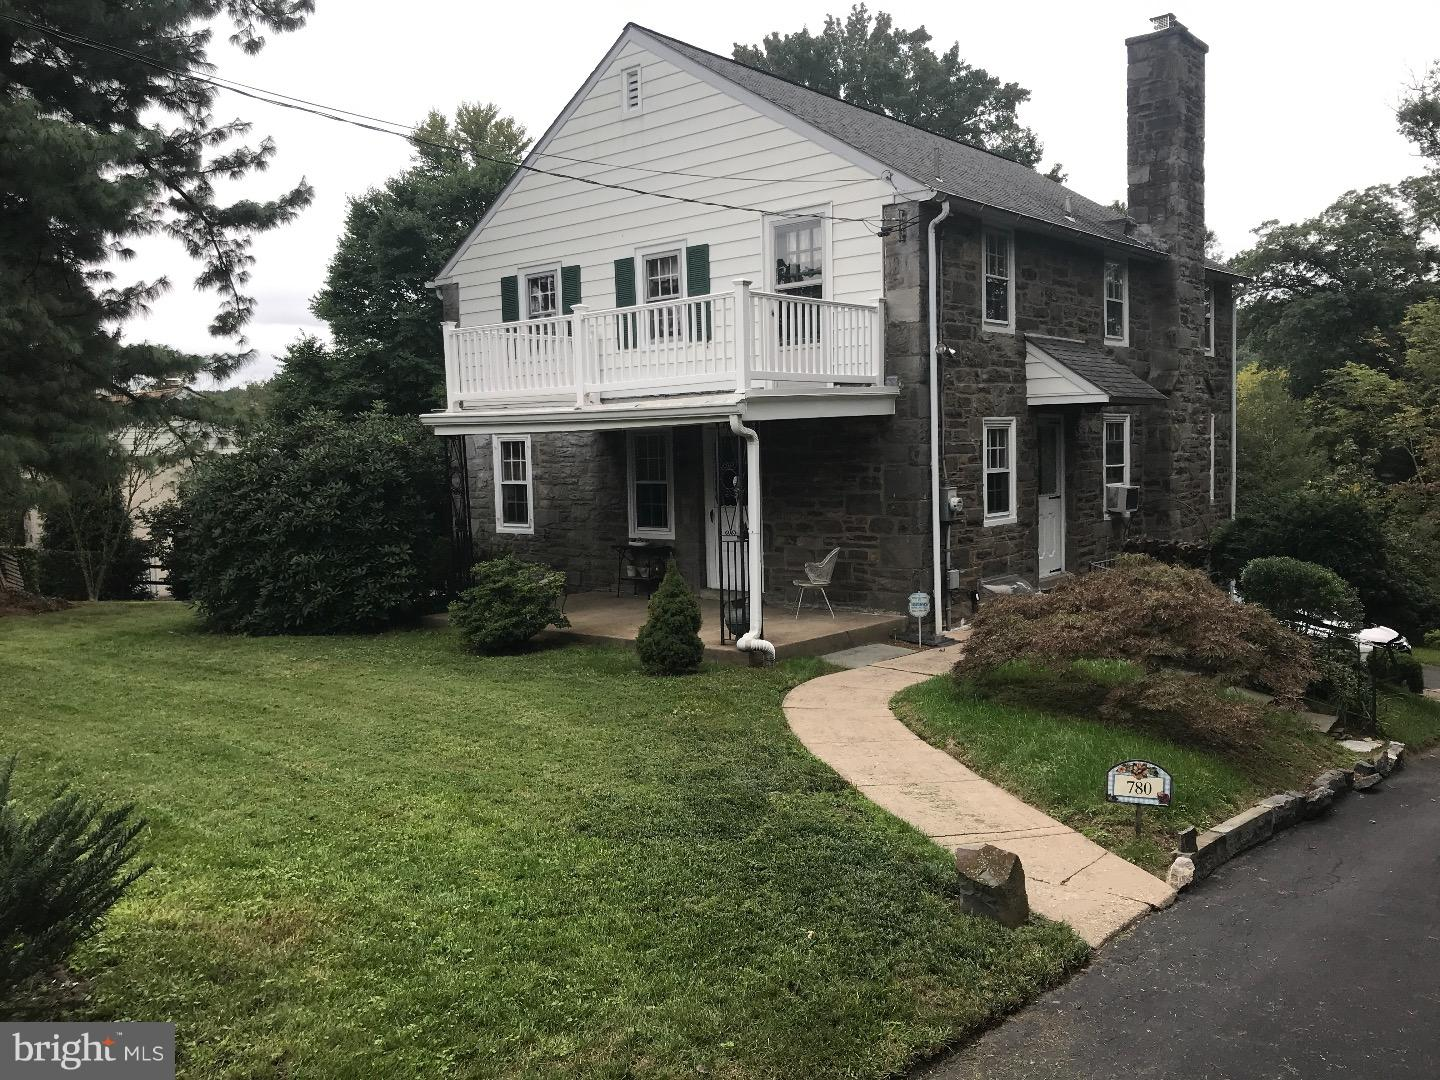 780 GERMANTOWN PIKE, LAFAYETTE HILL, PA 19444